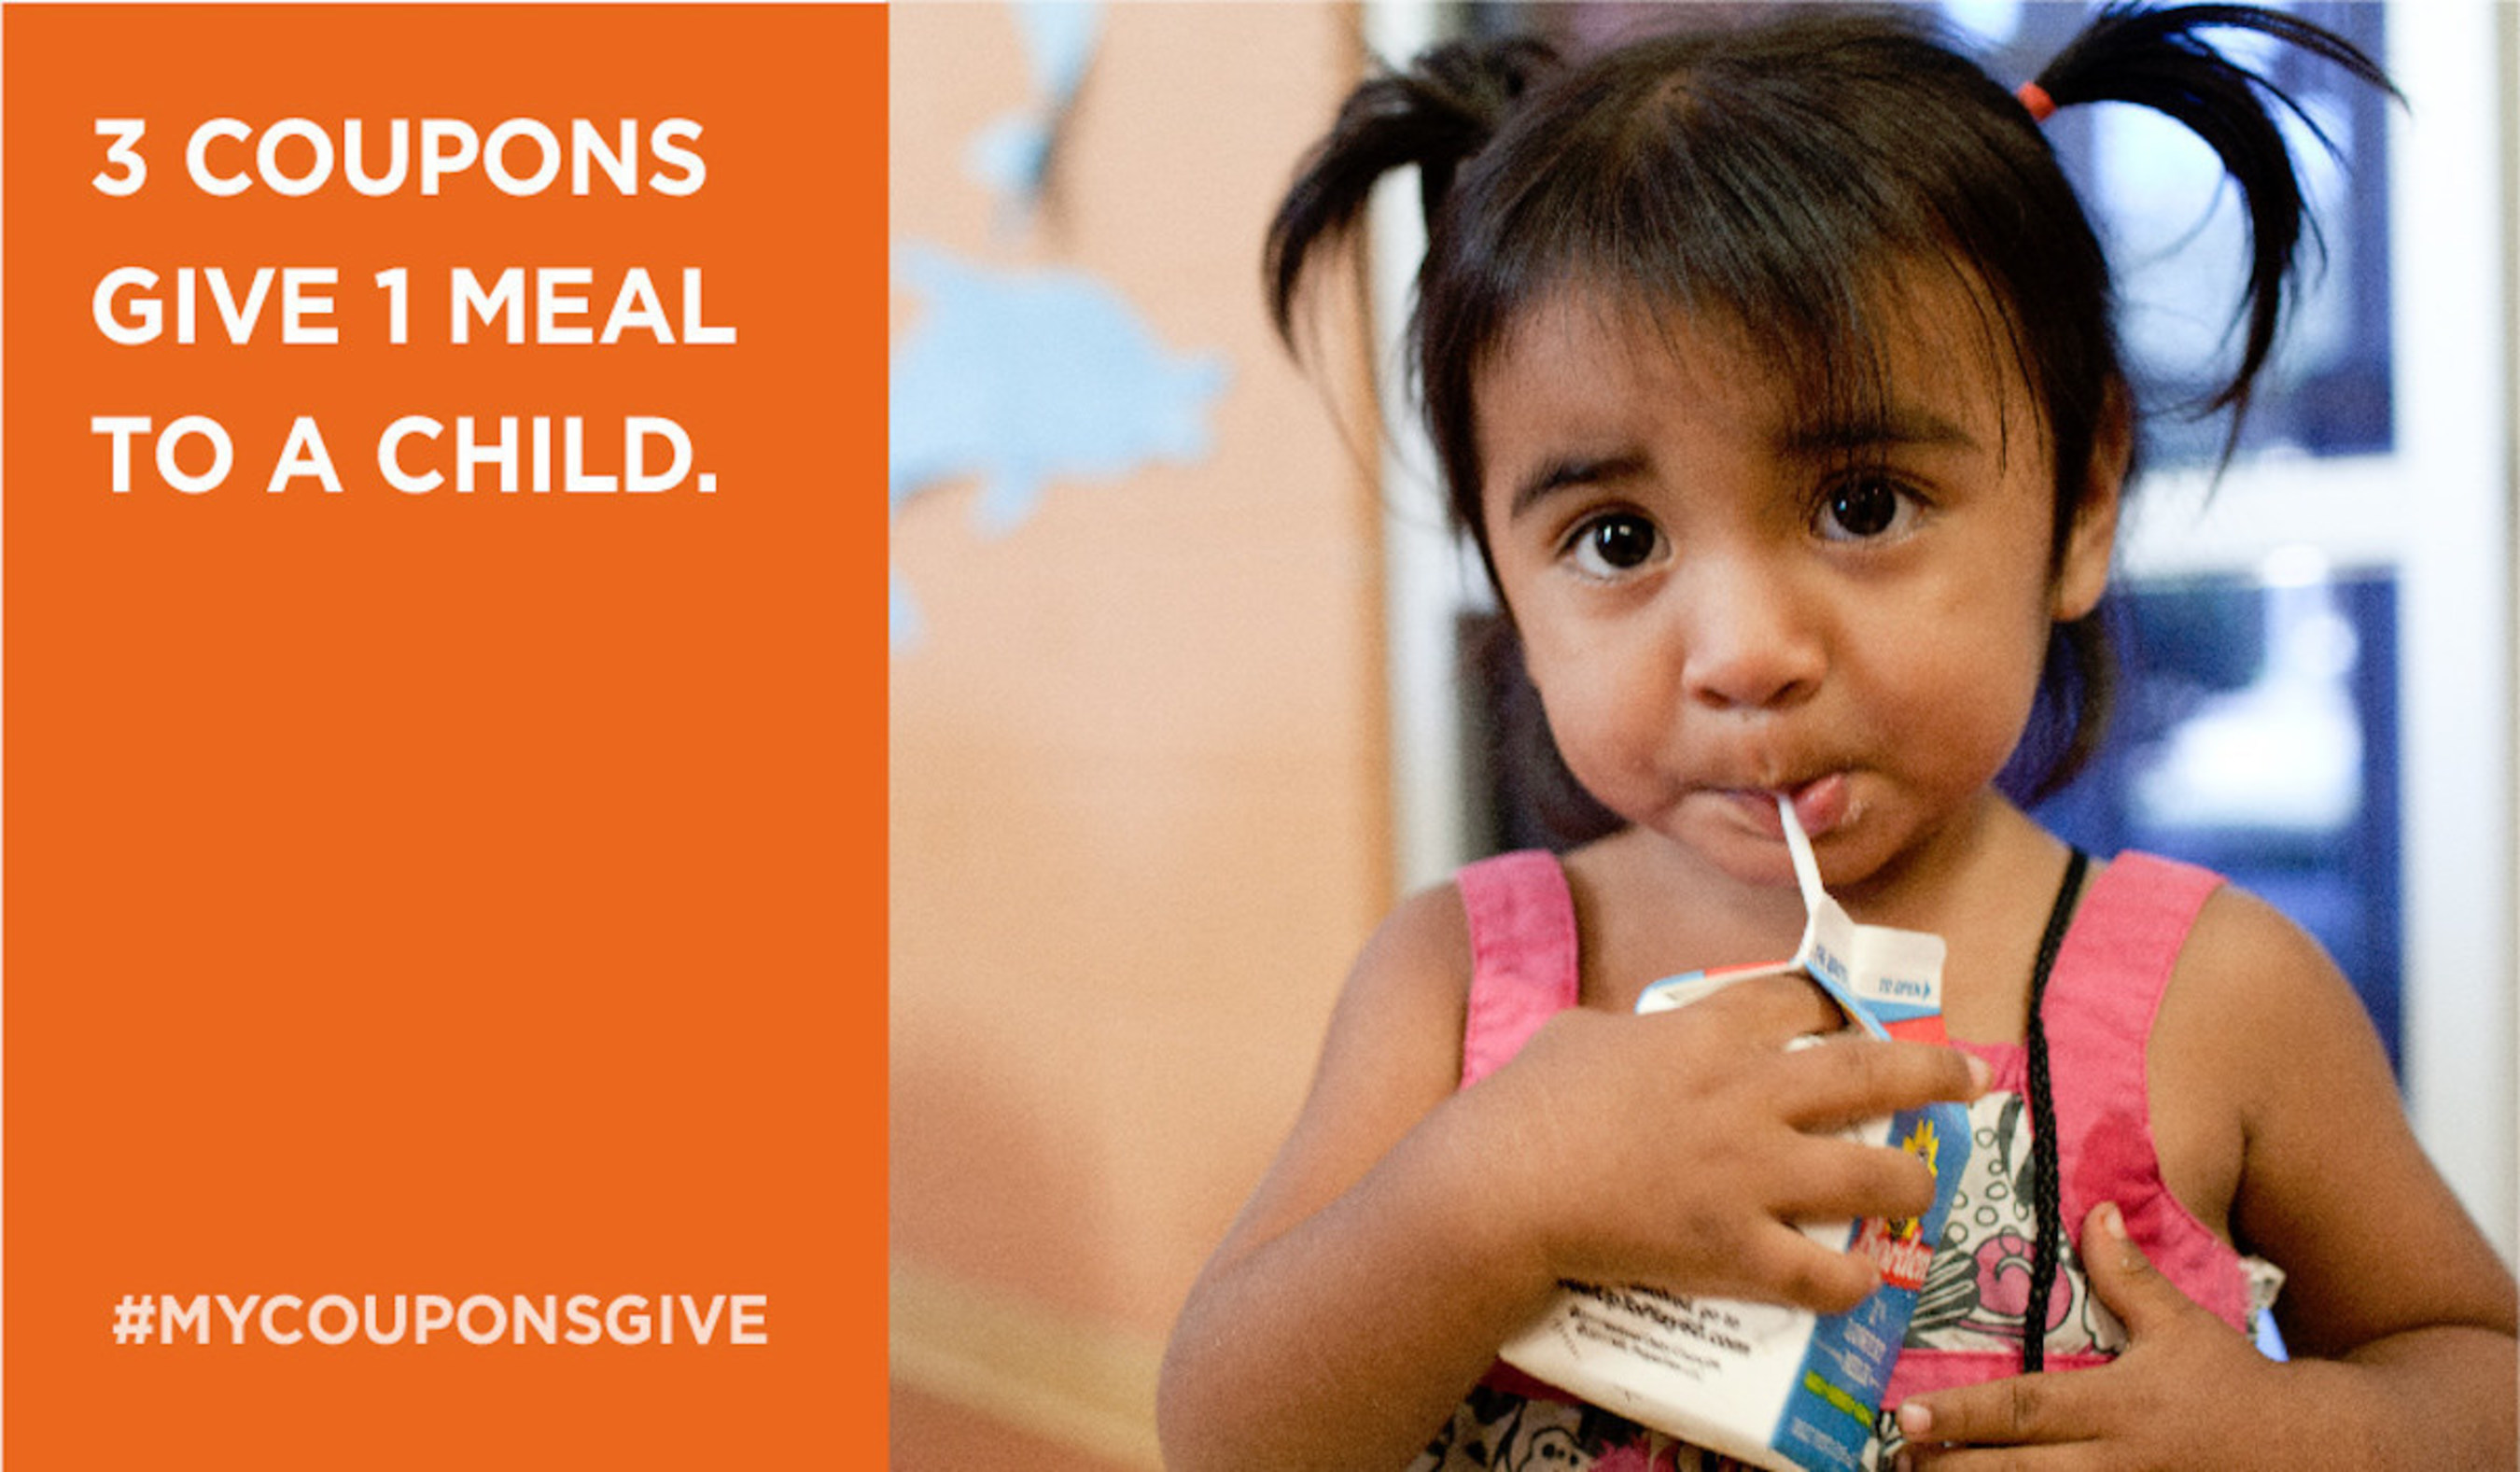 Quotient Launches #MyCouponsGive to Support No Kid Hungry